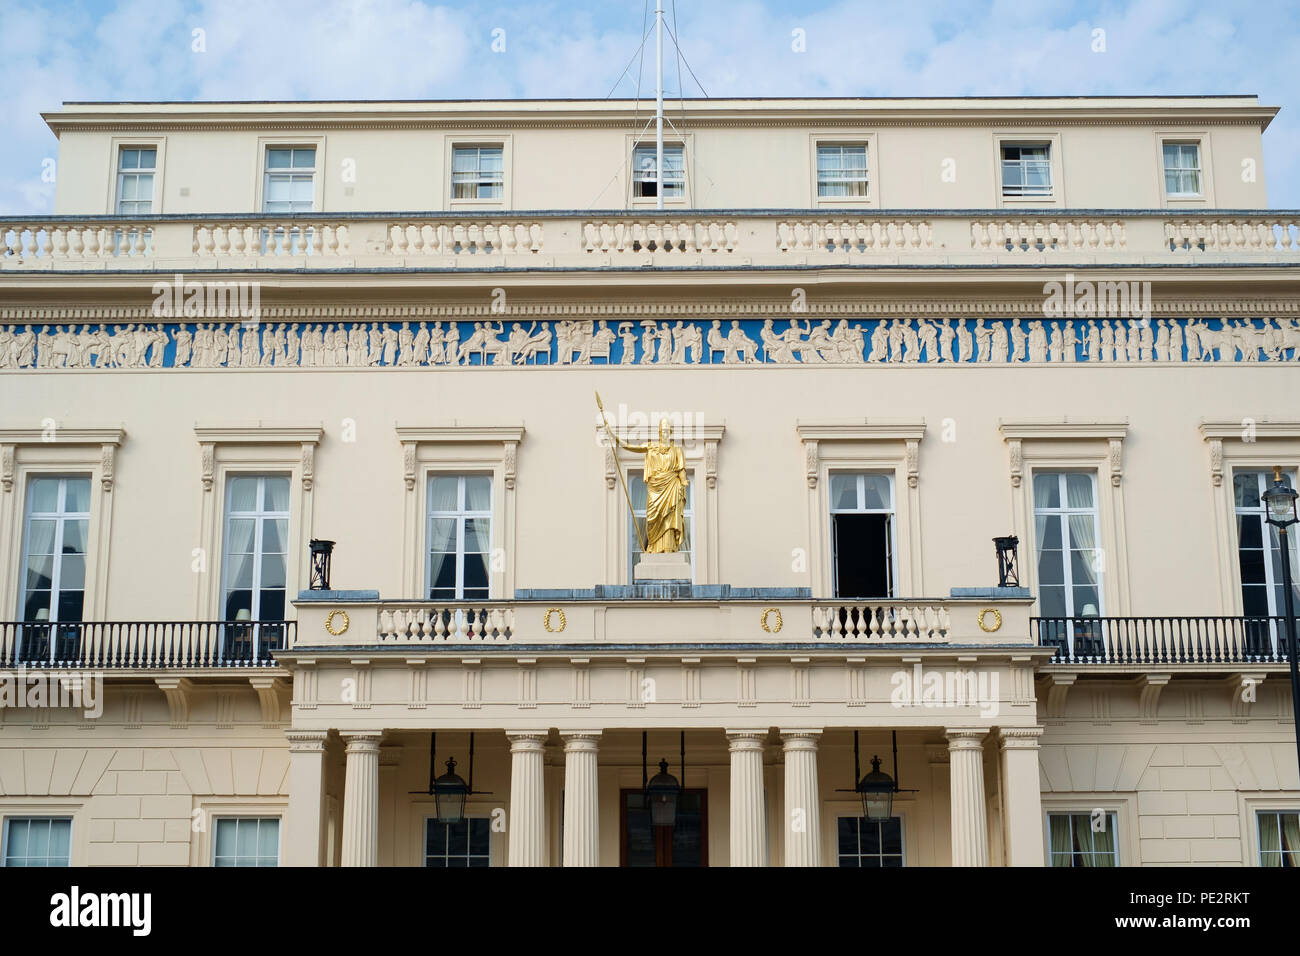 Front view of The Athenaeum Club building , Pall Mall, London with gold statue - Stock Image